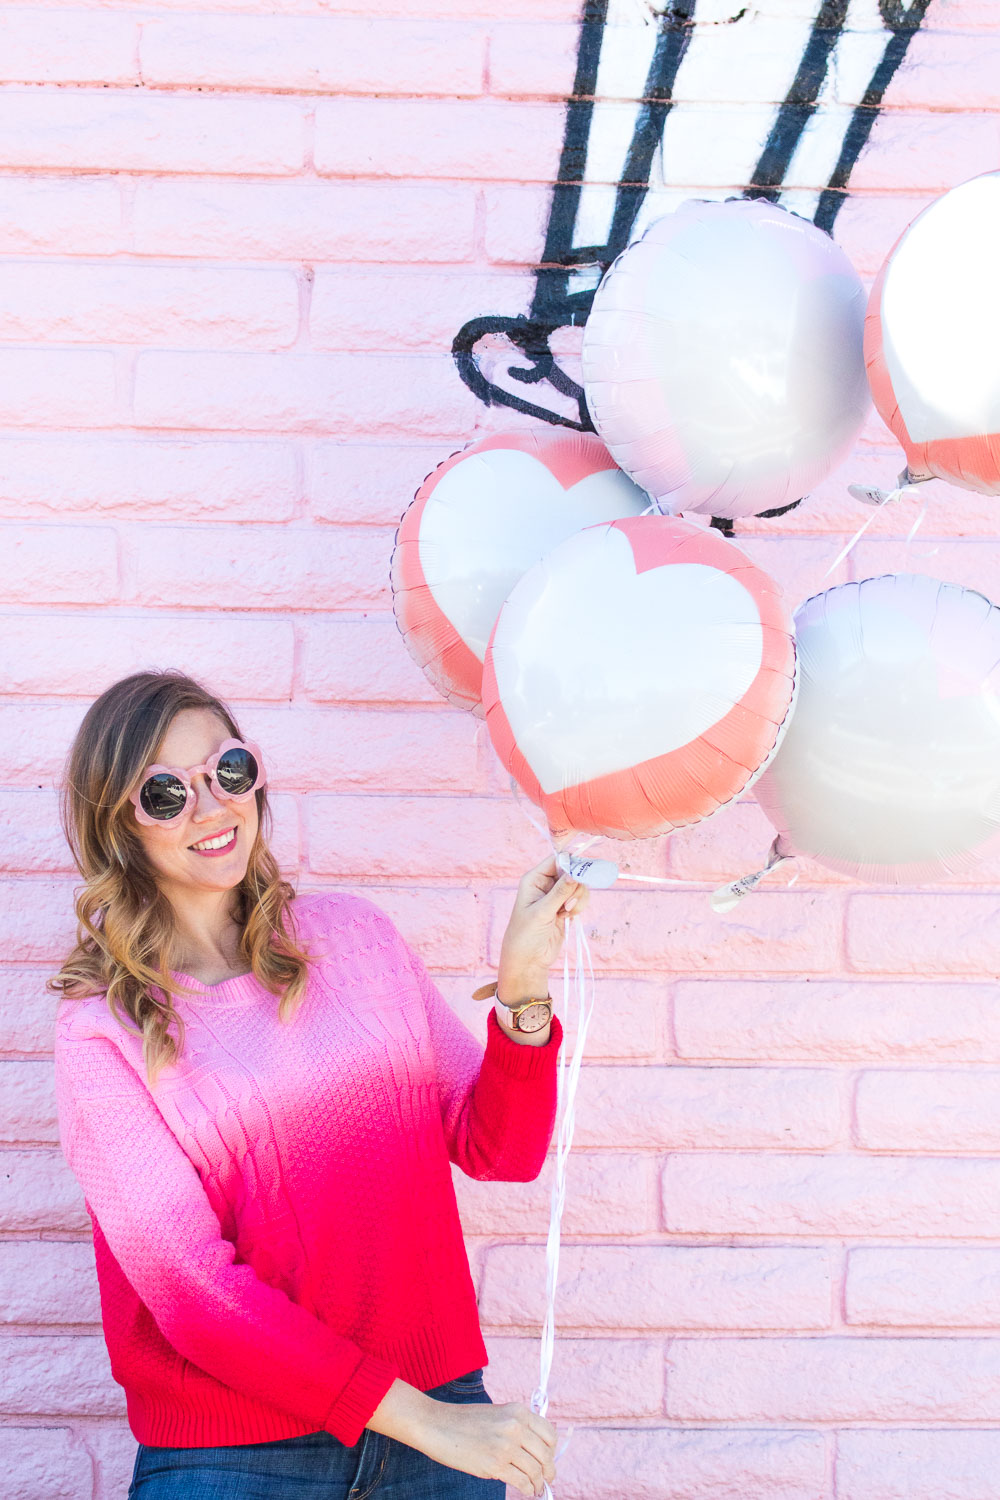 DIY Silhouette Heart Balloons for Valentine's Day | Club Crafted